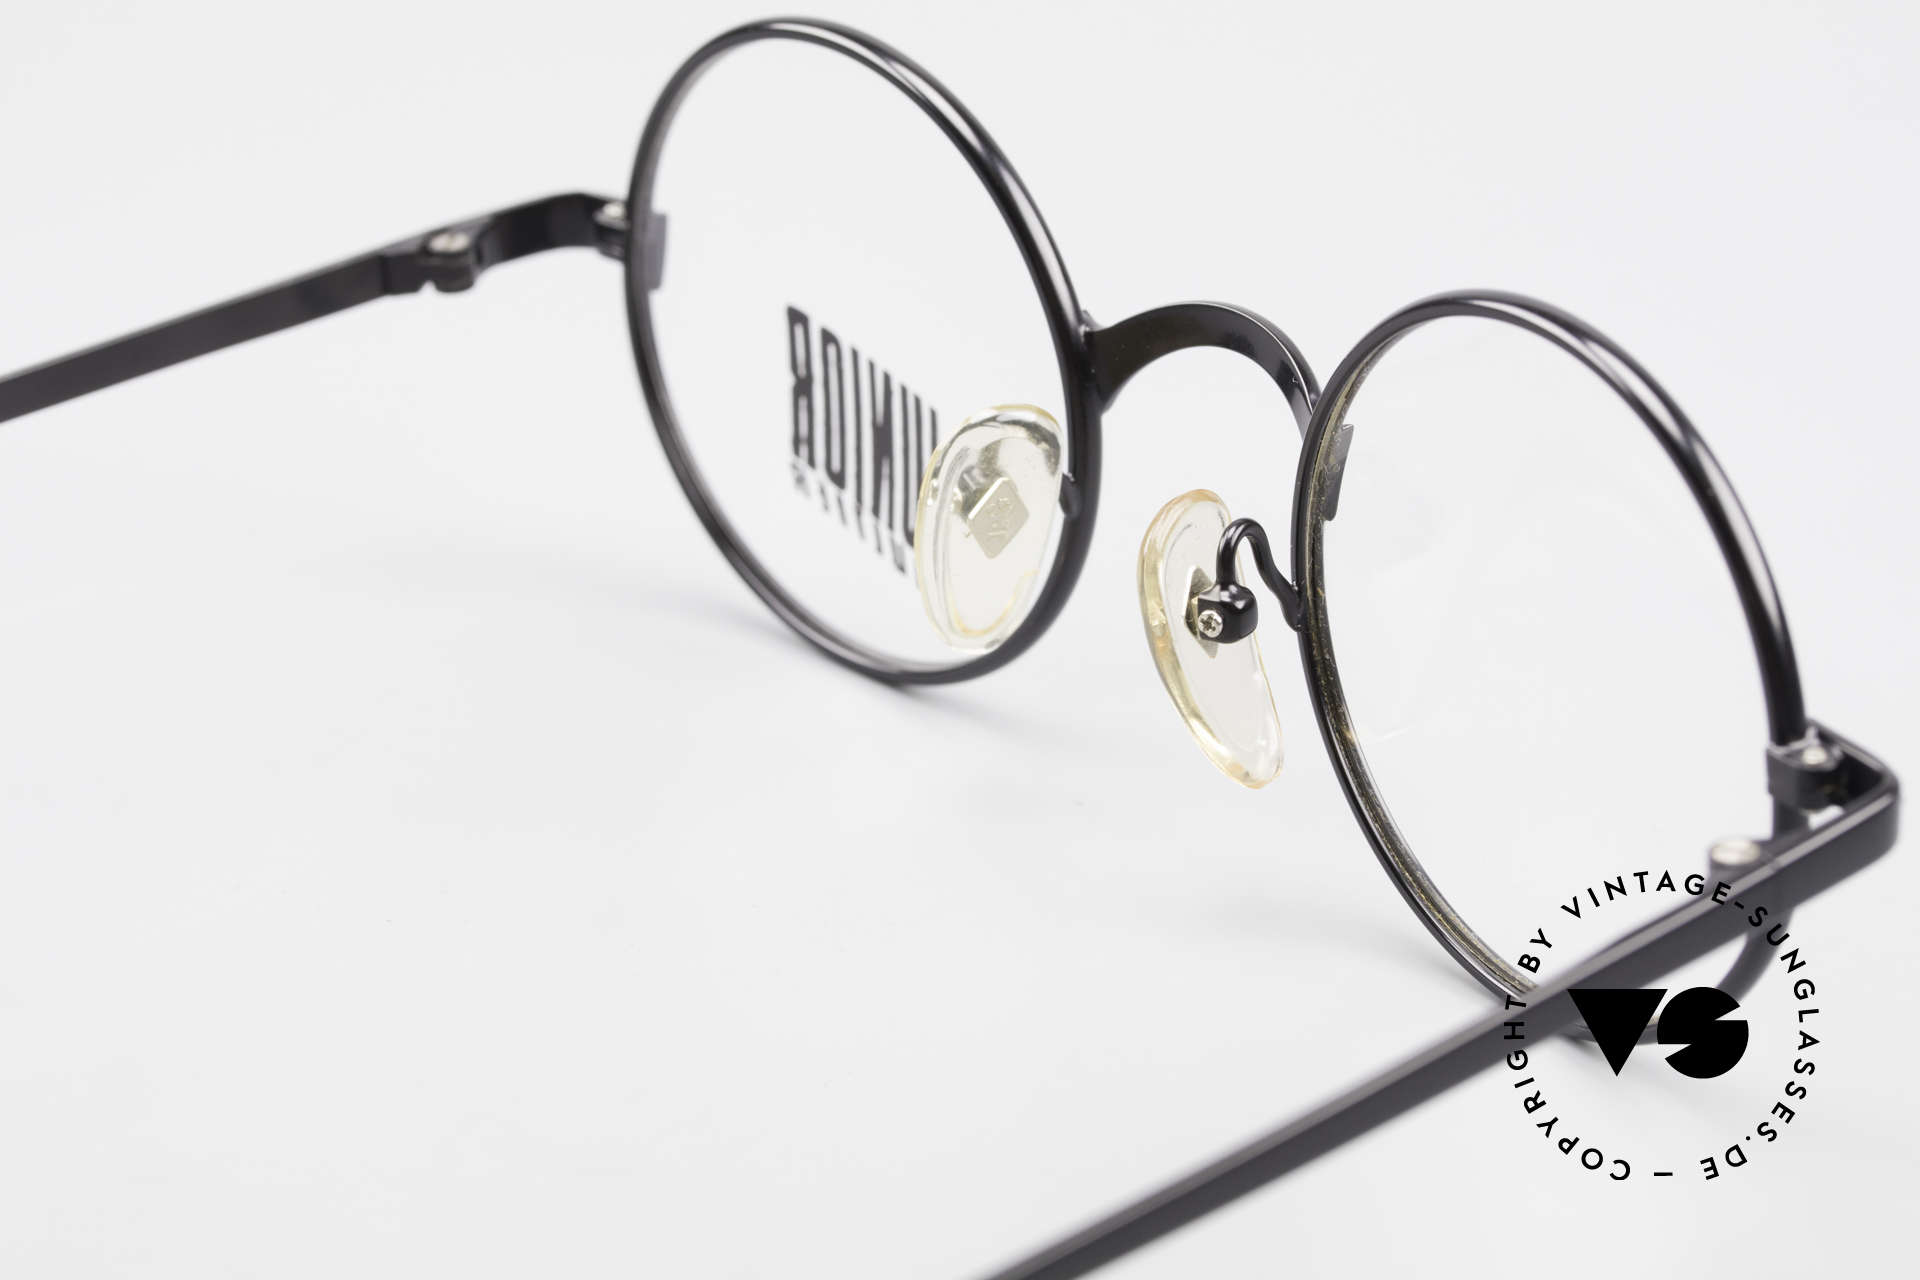 Jean Paul Gaultier 57-0173 Round Glasses Junior Gaultier, Size: medium, Made for Men and Women